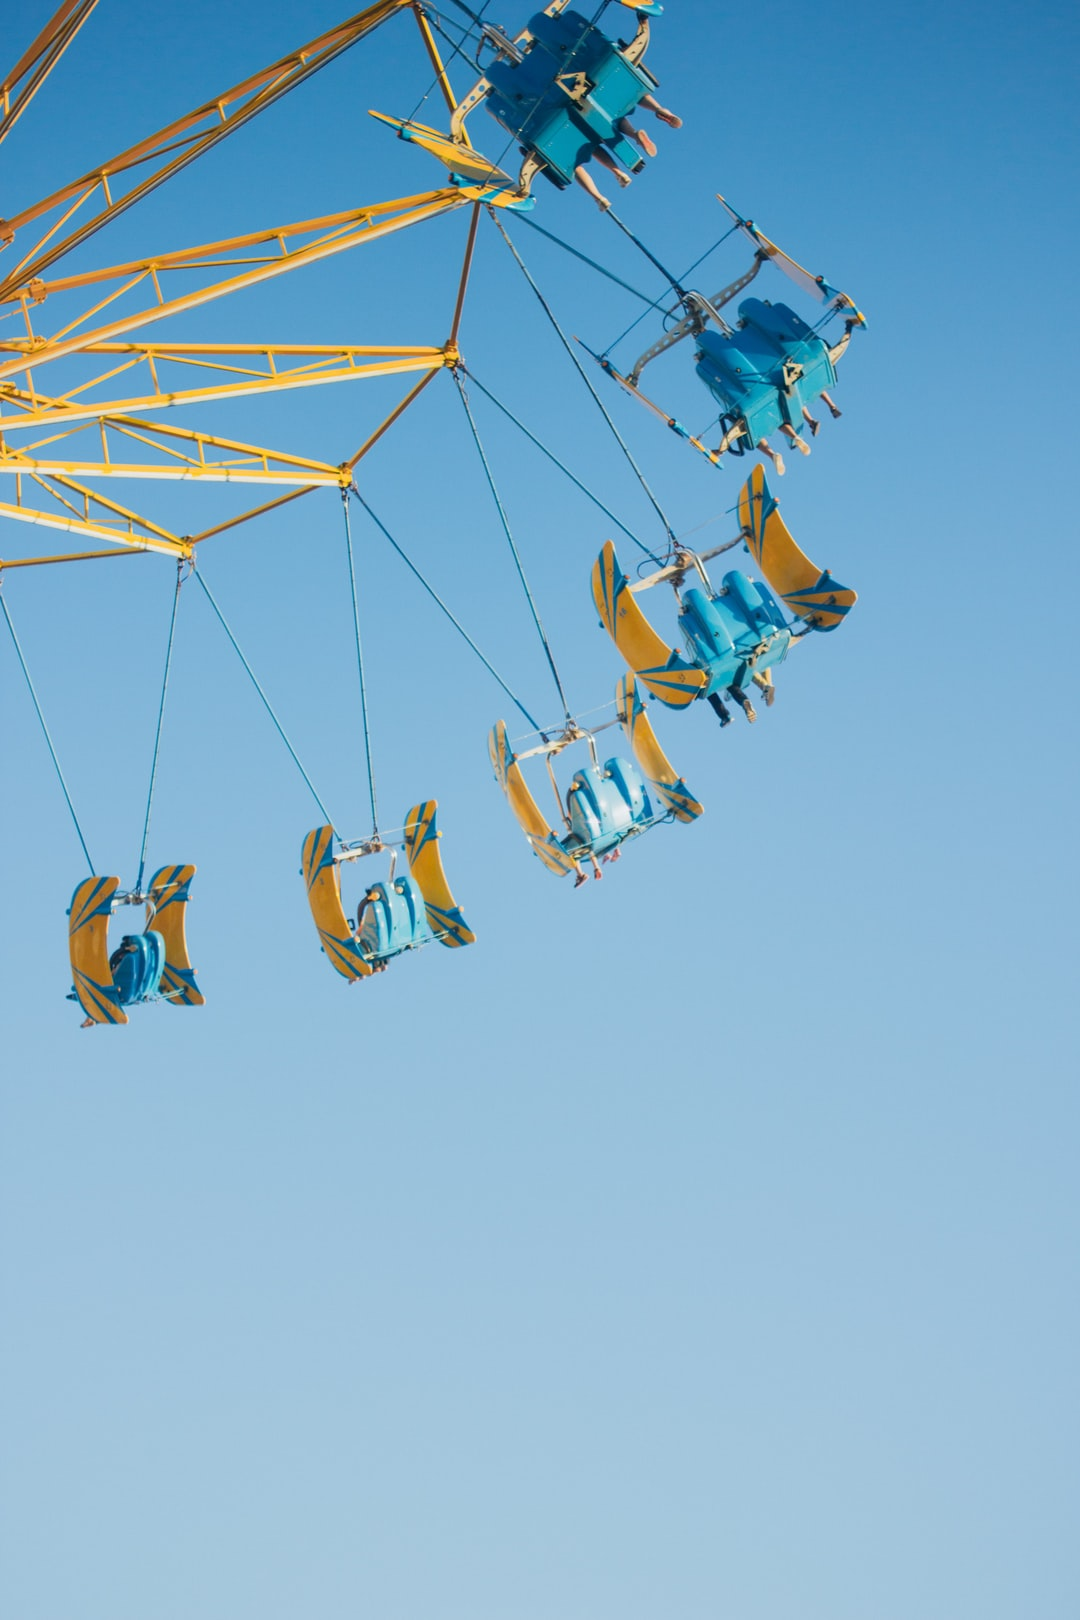 Swing carousel is not only a joy maker but also a memory maker.